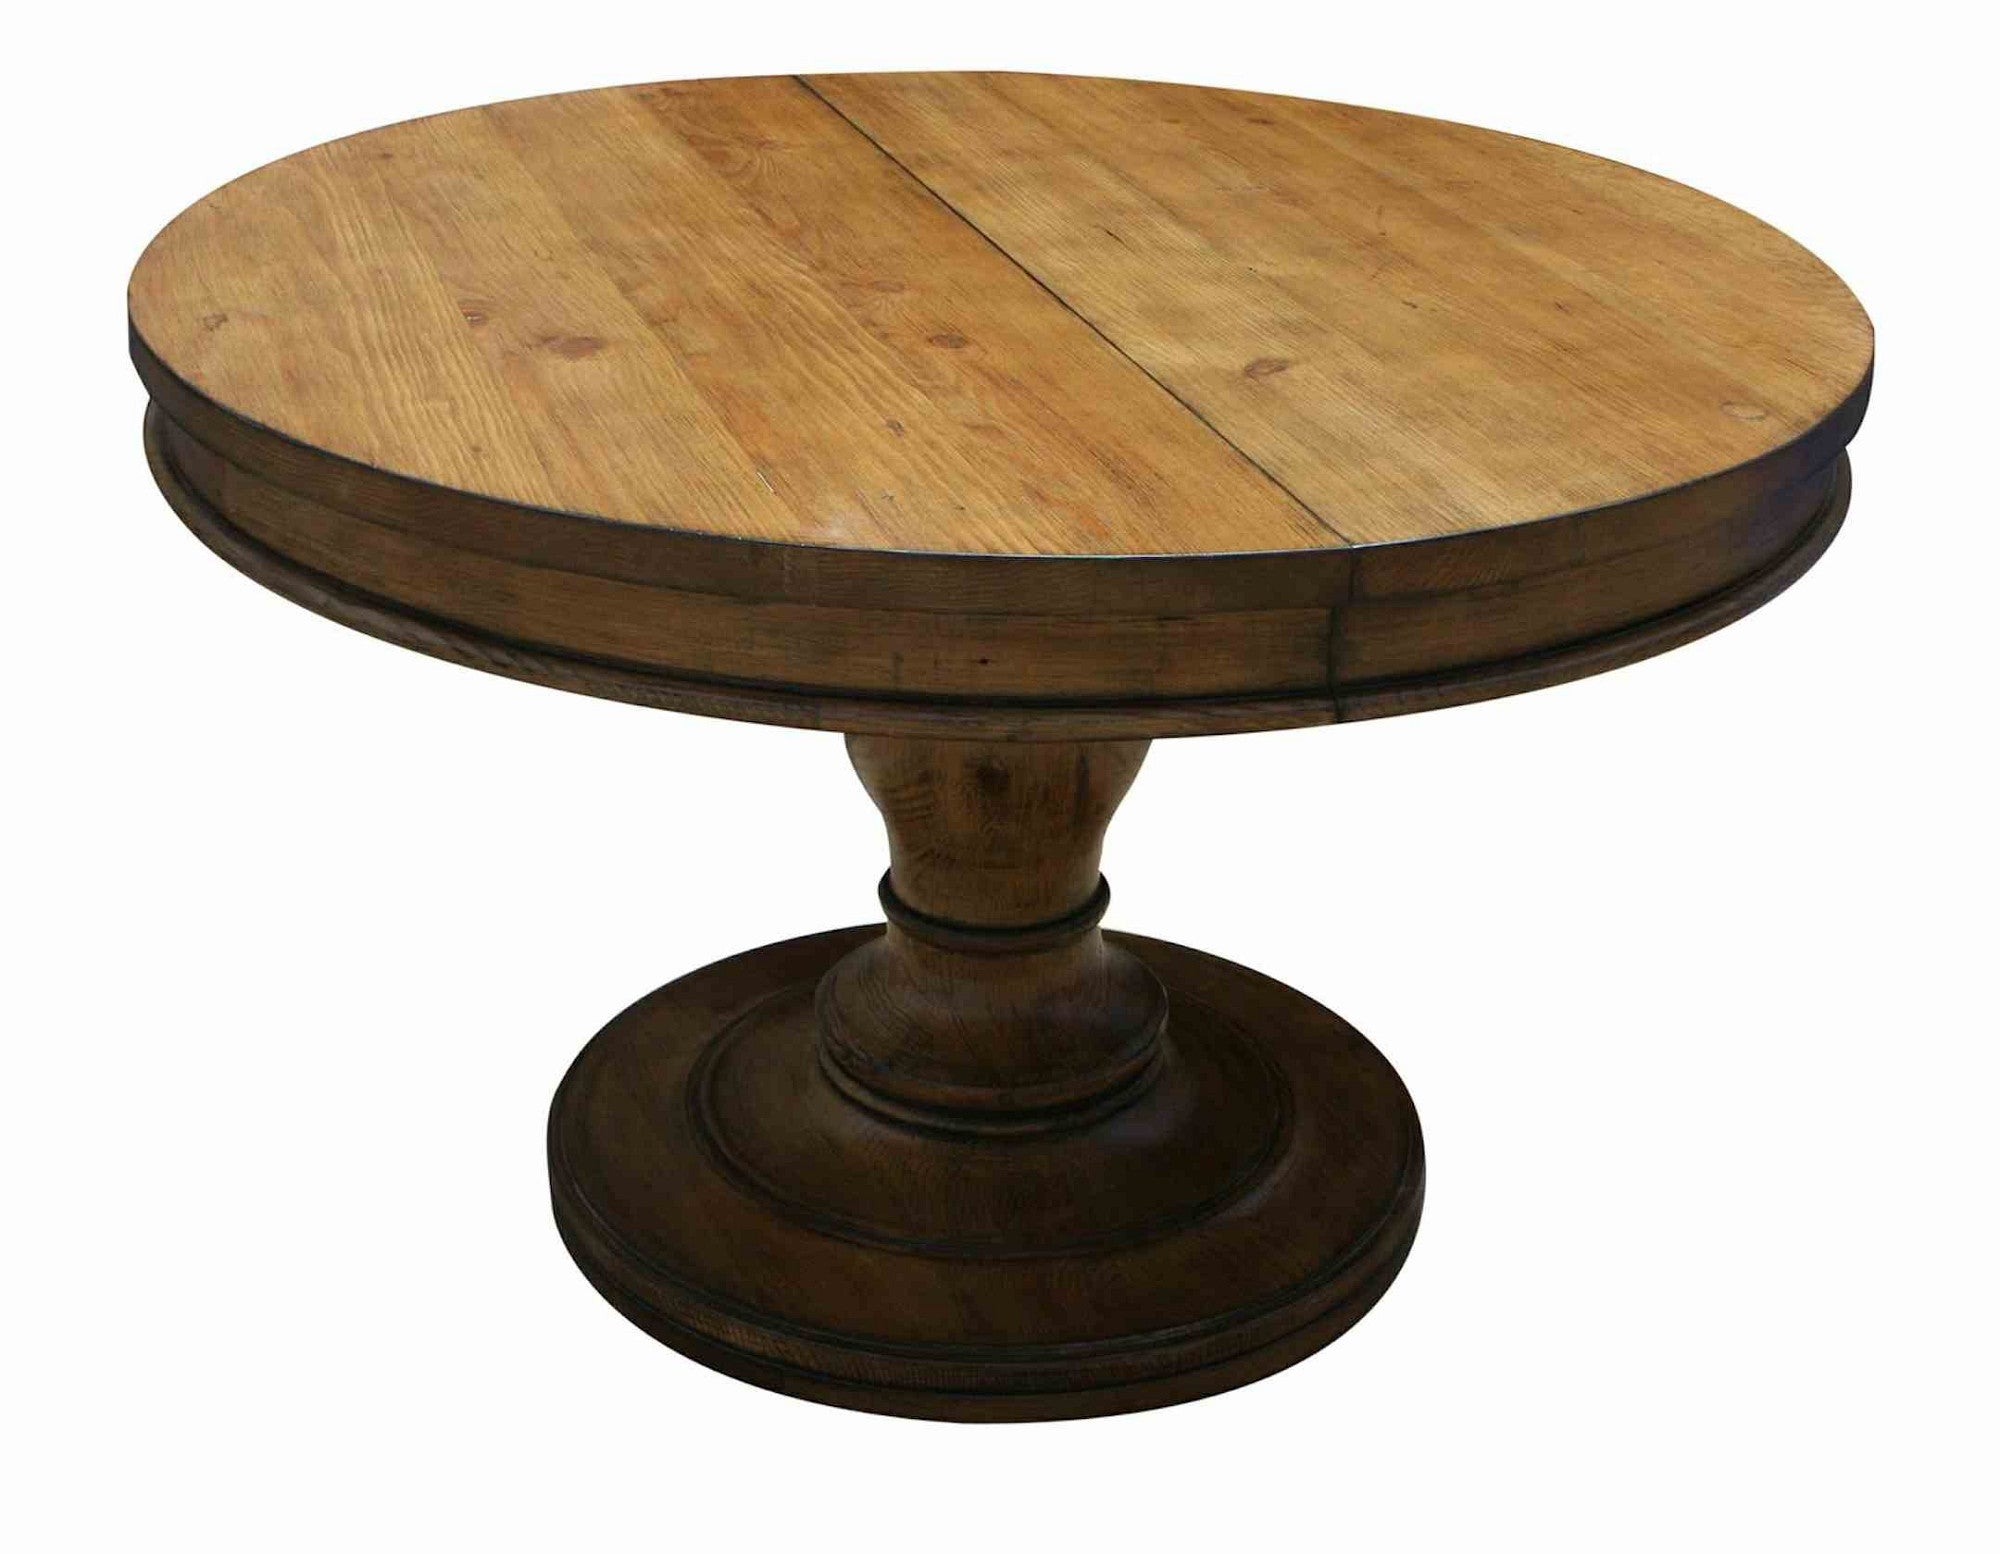 Westport Round Reclaimed Wood Extension Pedestal Table Mortise